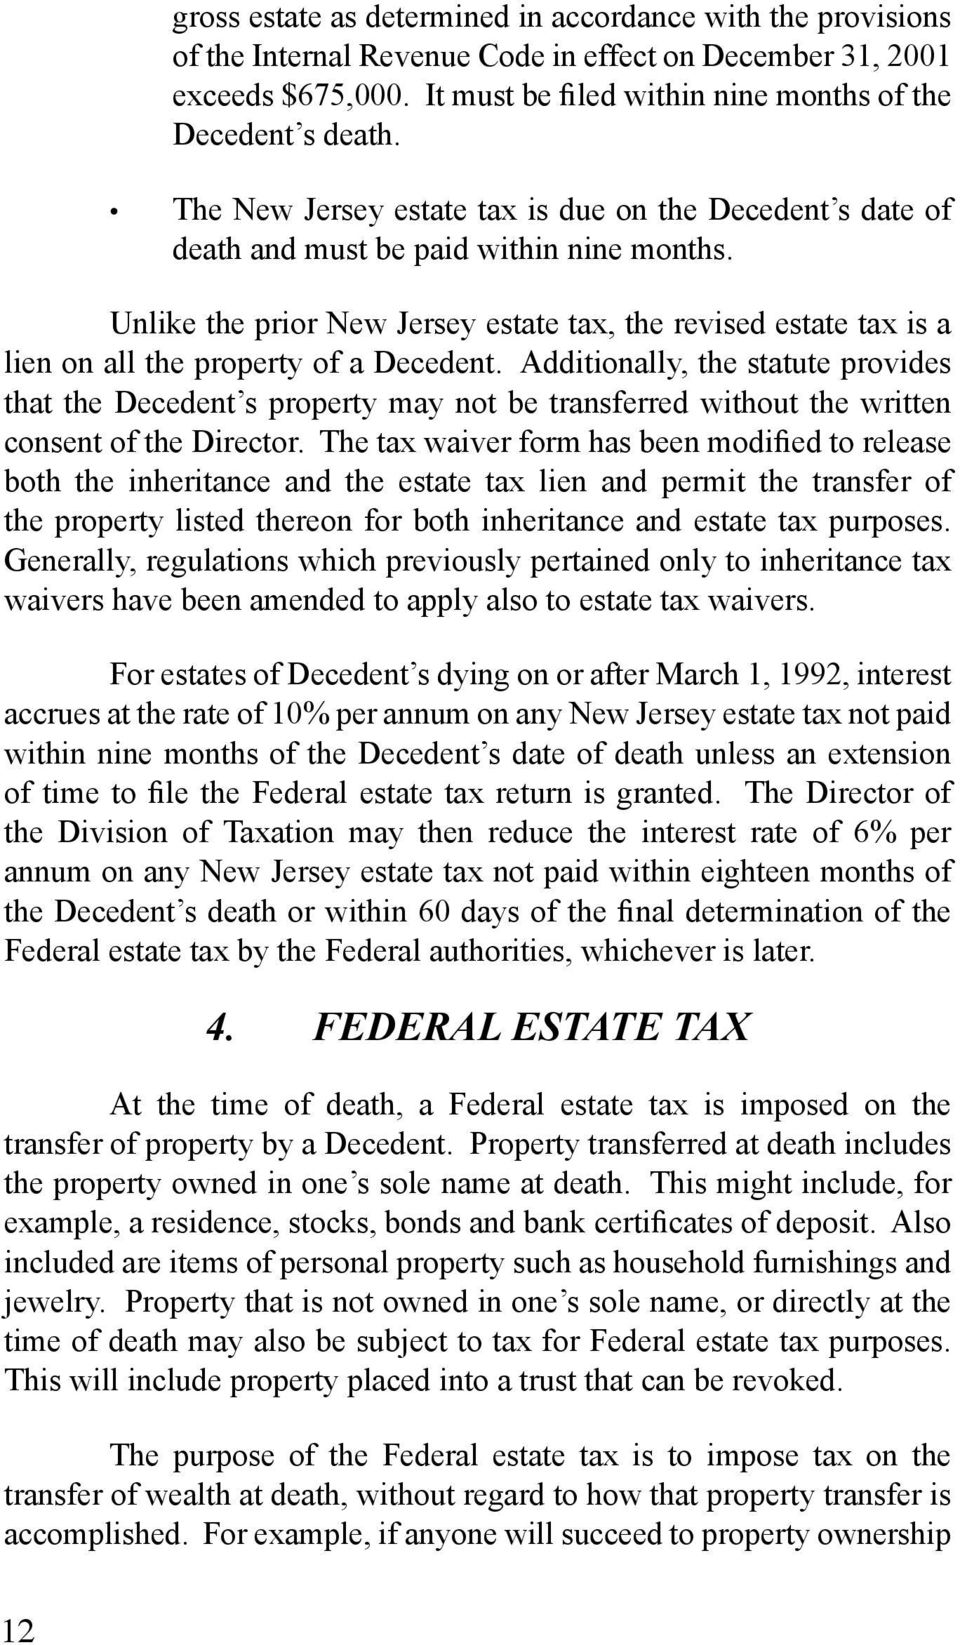 Unlike the prior New Jersey estate tax, the revised estate tax is a lien on all the property of a Decedent.